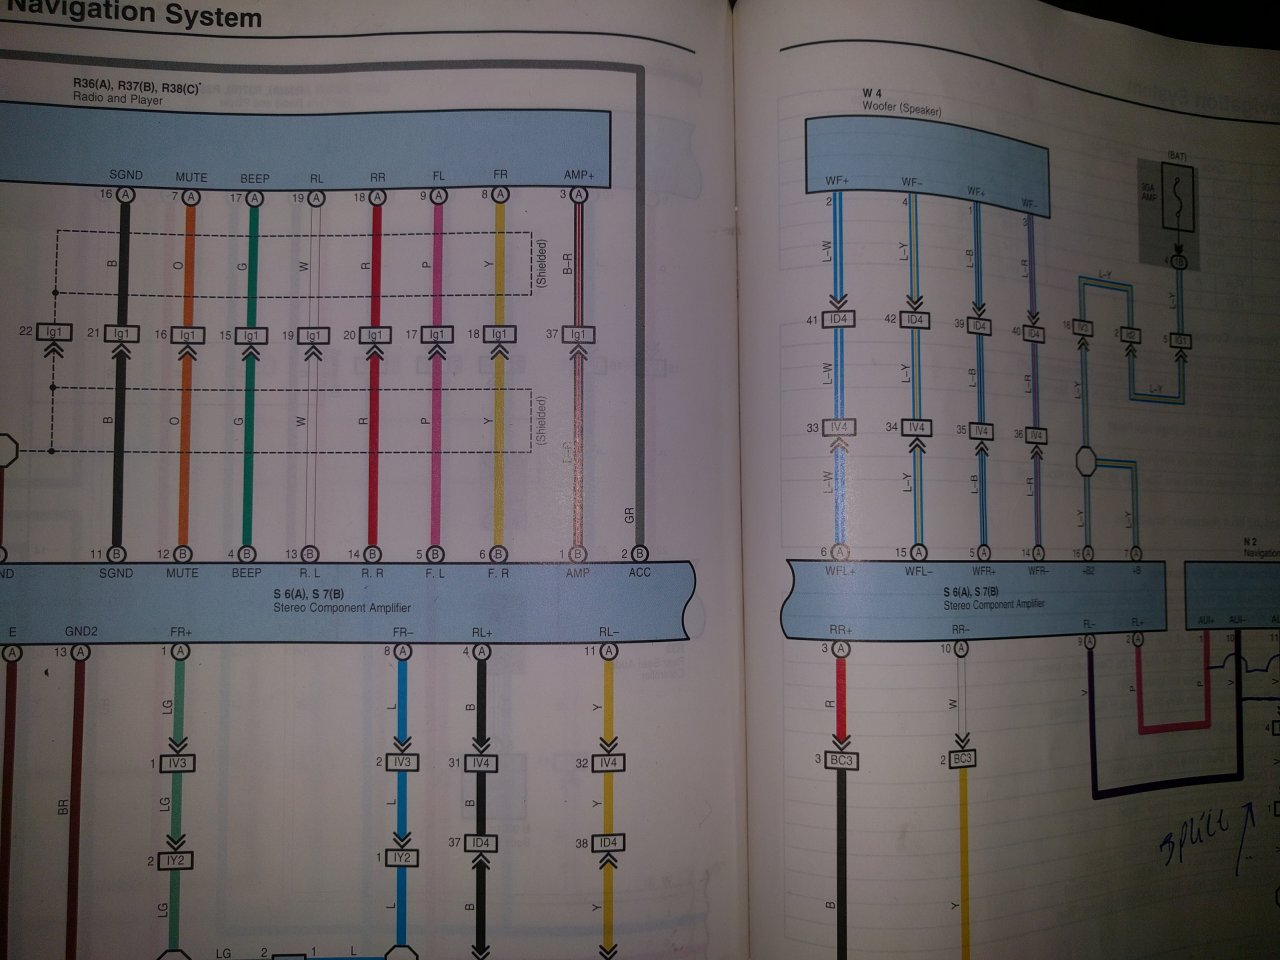 hight resolution of stereo wiring diagram for 03 100 series ih8mud forum at highcare asia 100 series land cruiser